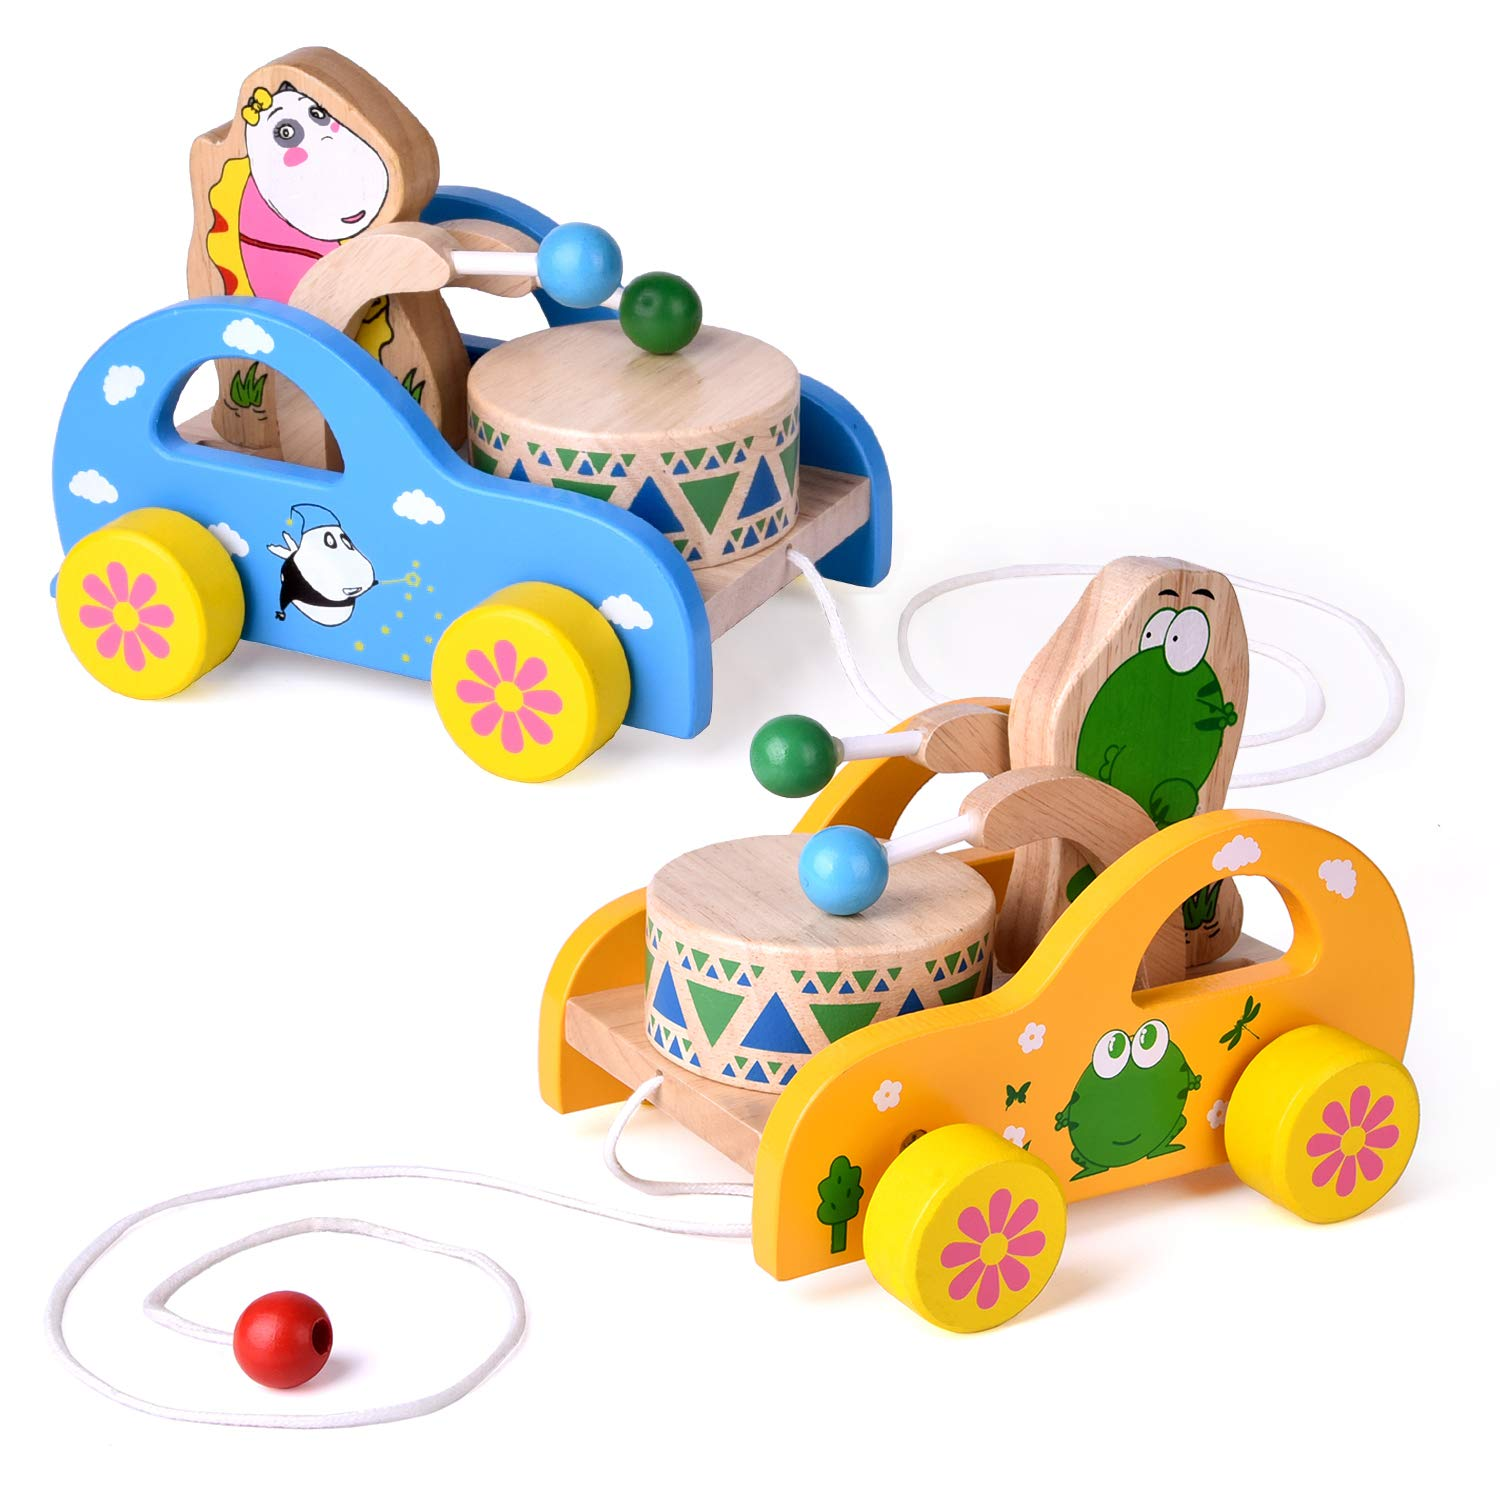 2 Pack Toddler Toys, Wooden Pull Toys for Kids, Animal Pull-Along Toys Beating Drum, Wooden Baby Toys, Gifts FUN LITTLE TOYS